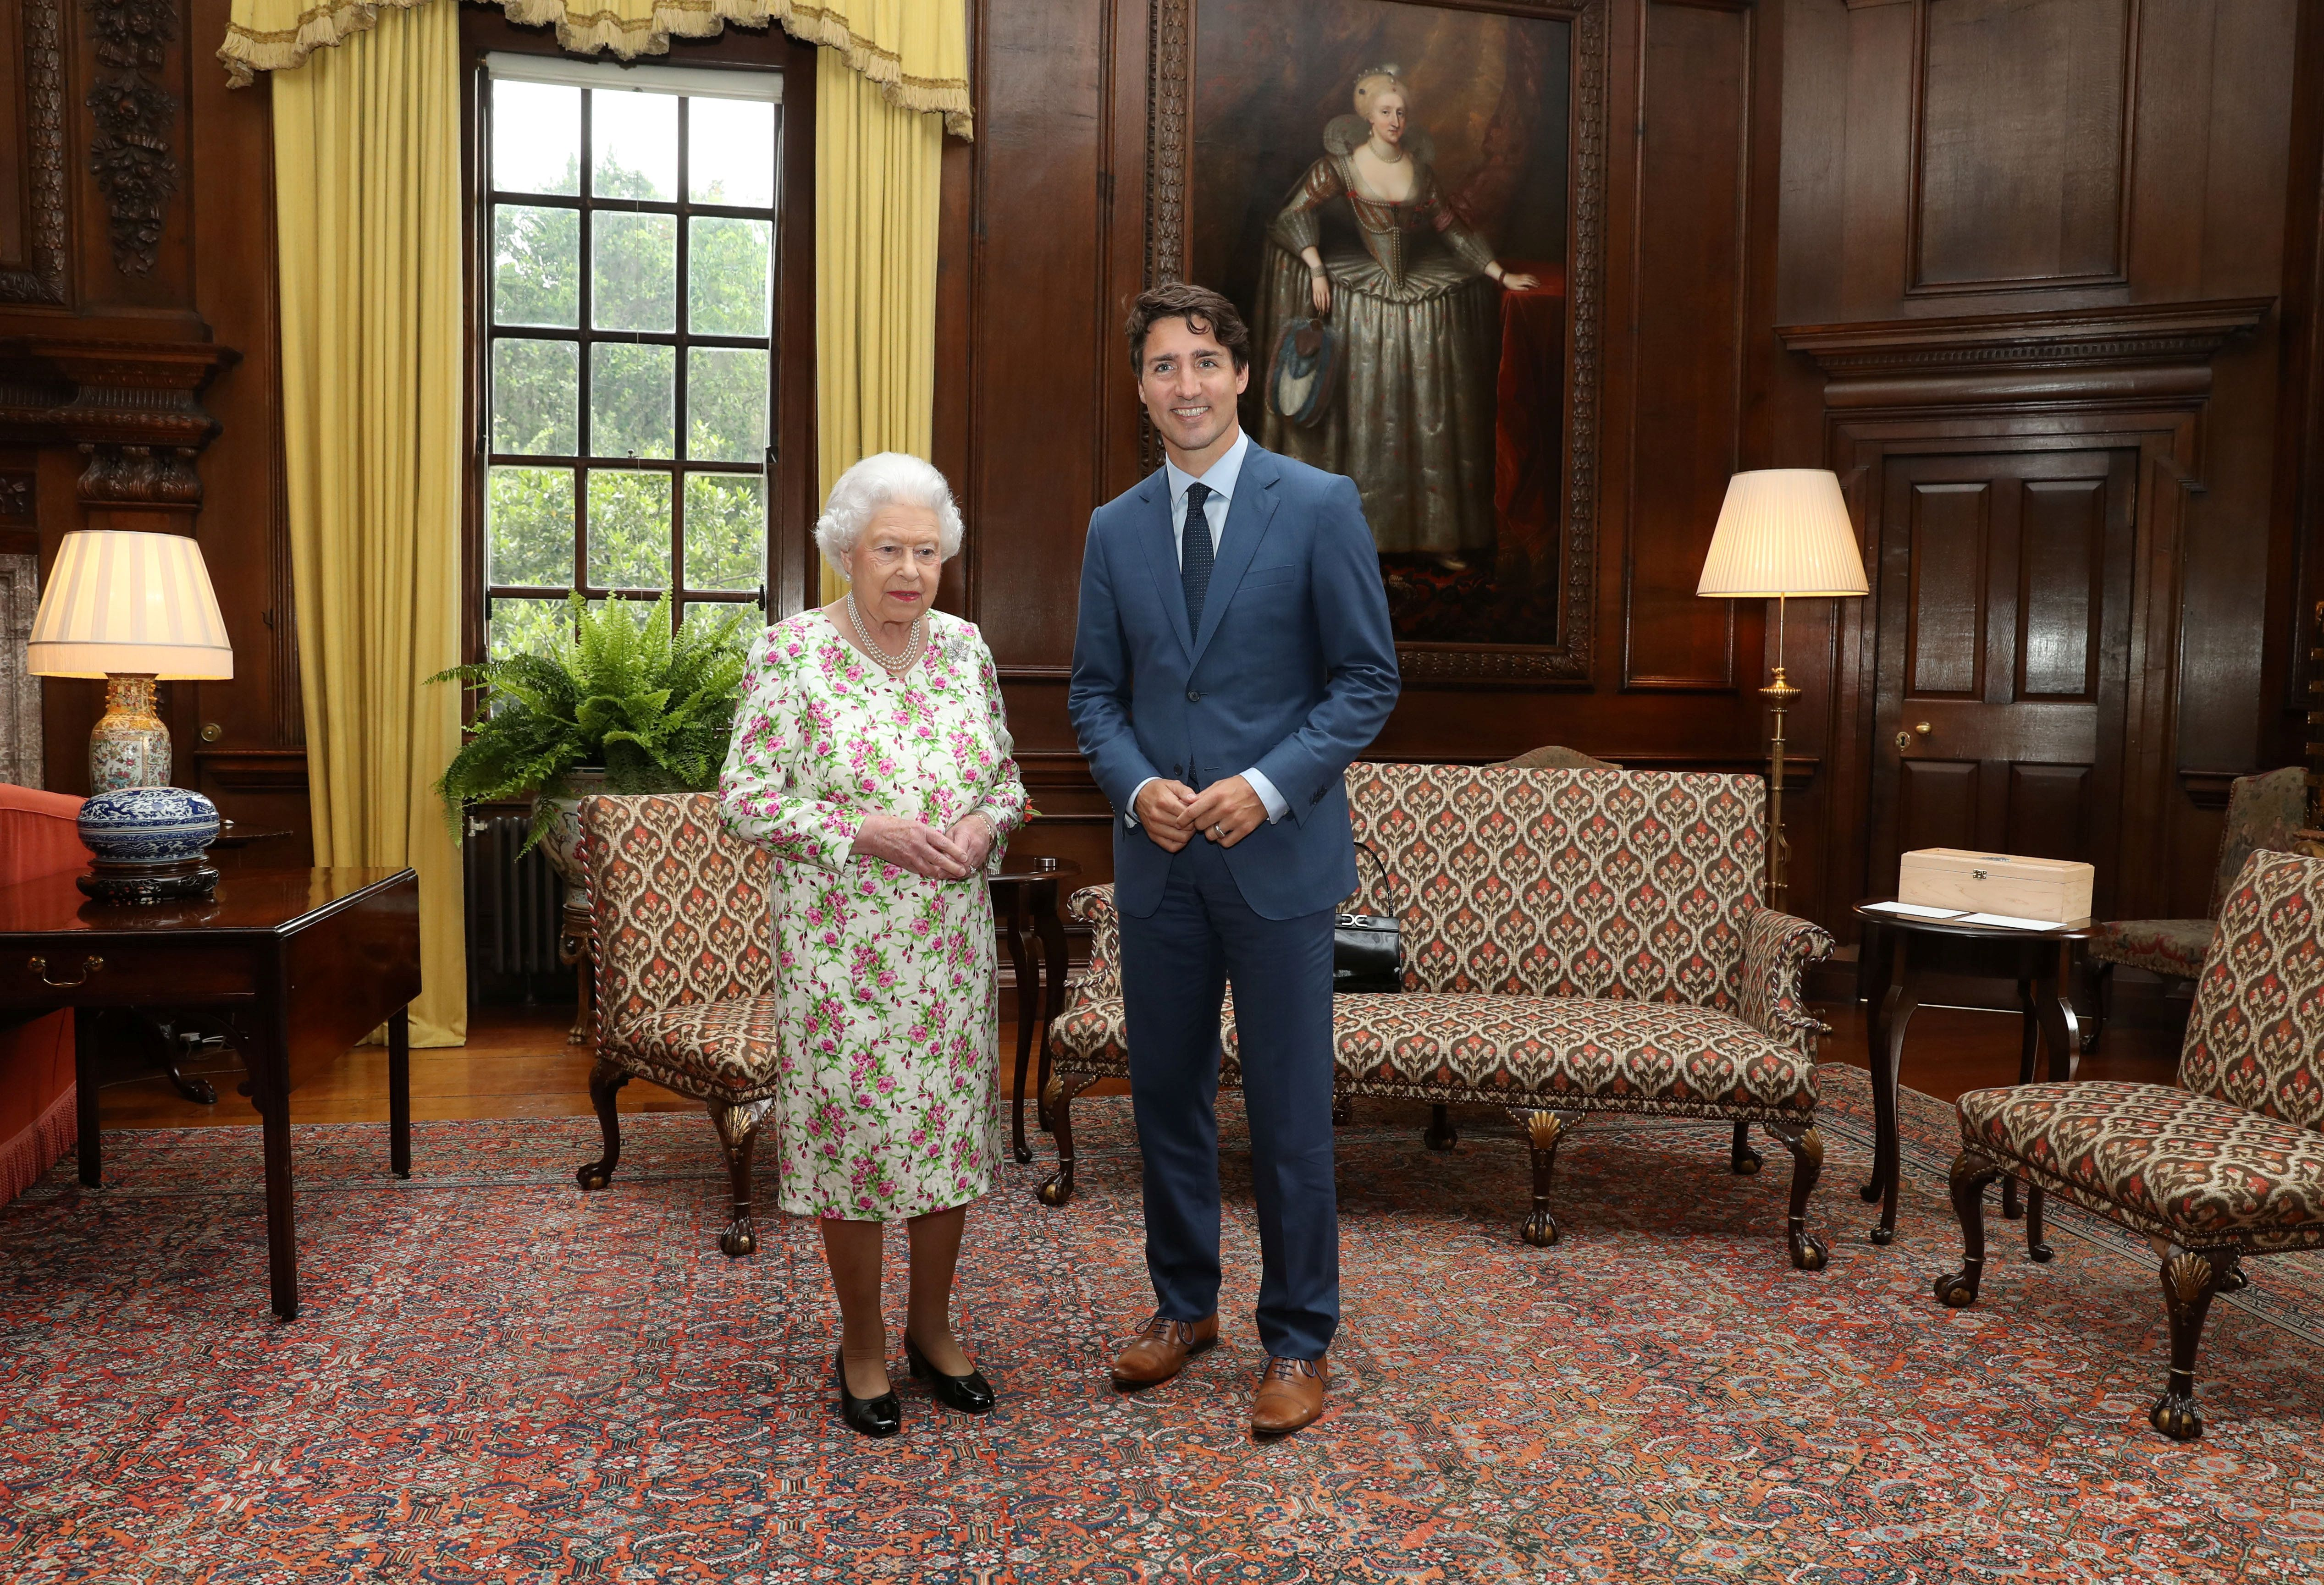 Britain's Queen Elizabeth II greets Canada's Prime Minister Justin Trudeau during an audience at the Palace of Holyroodhouse in Edinburgh, Scotland, Britain July 5, 2017.REUTERS/Andrew Milligan/Pool